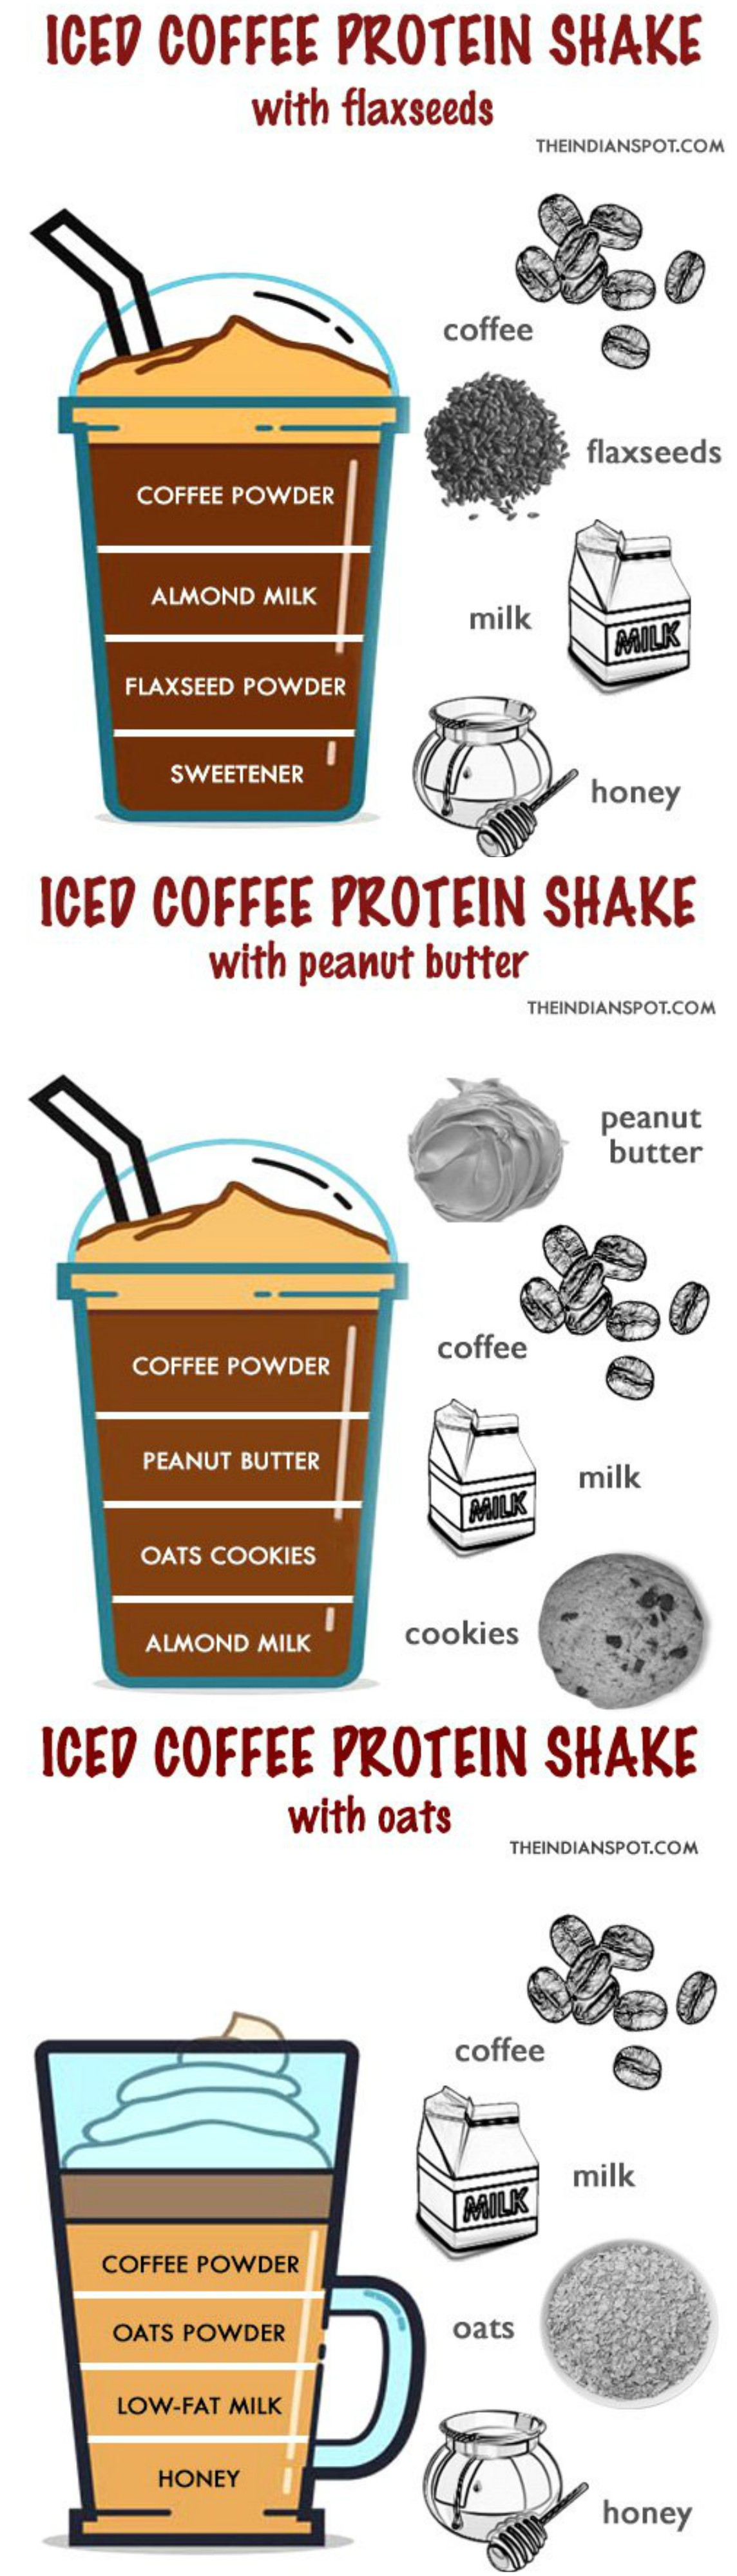 ICED COFFEE PROTEIN SHAKE RECIPES